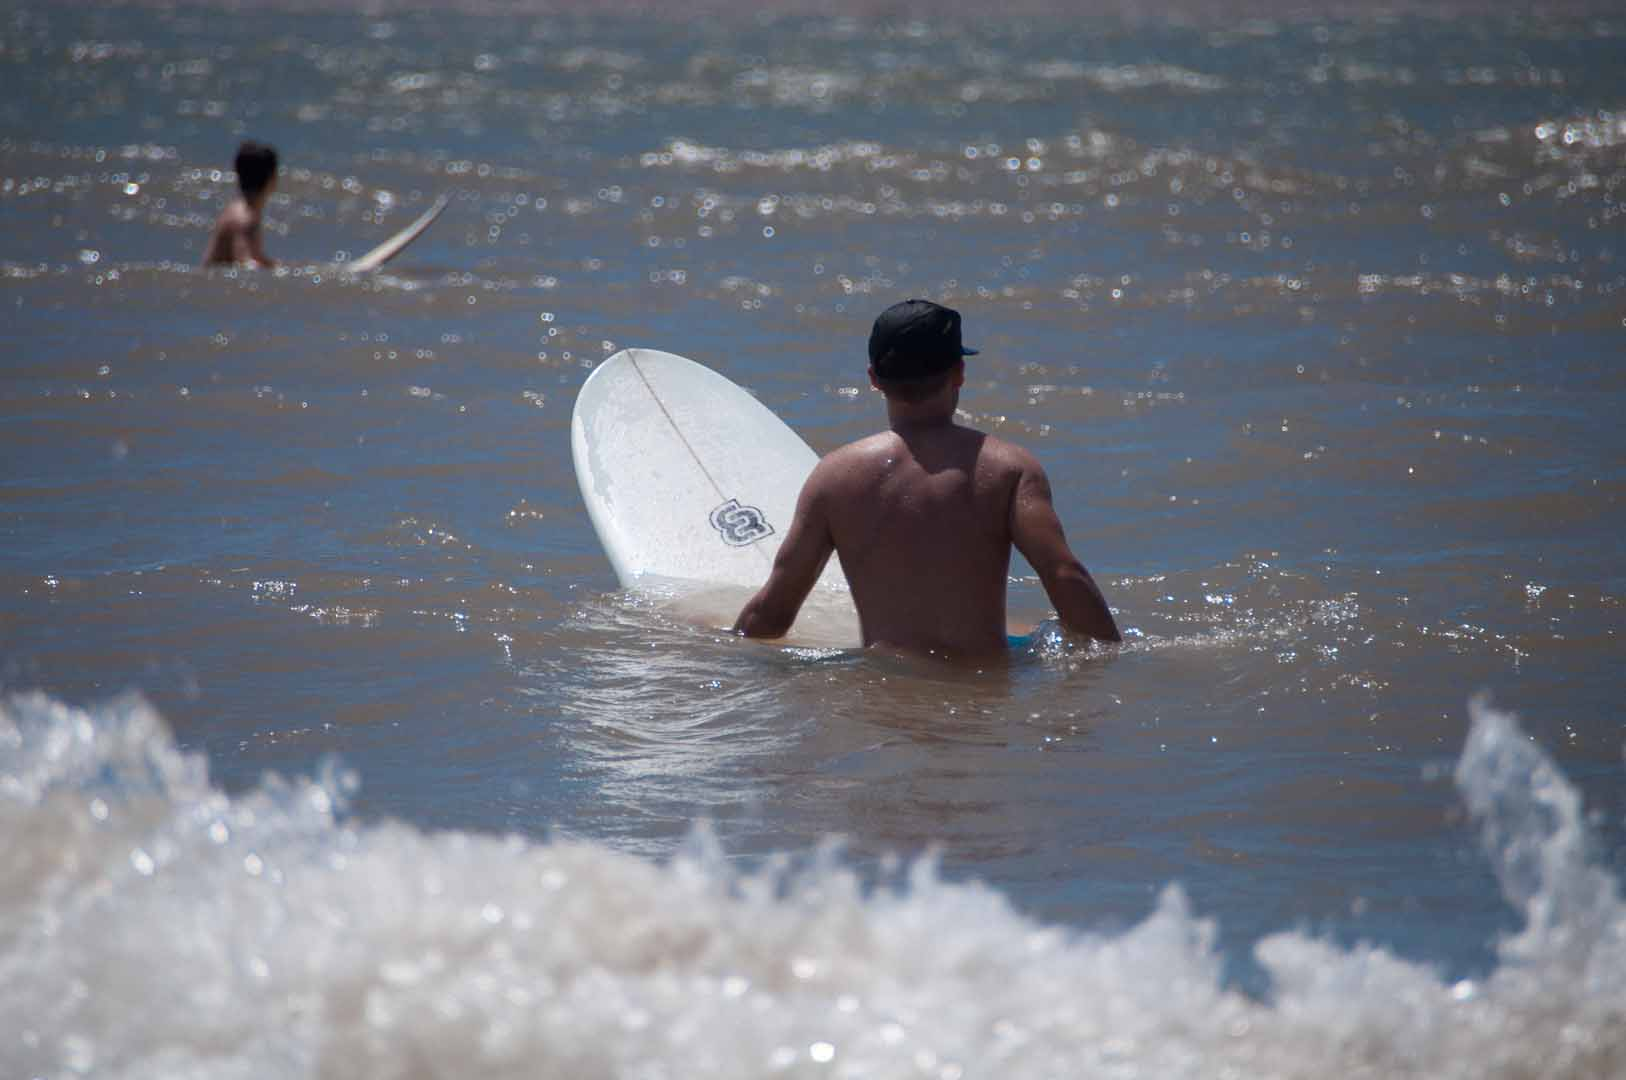 SurfsideLateJune_20150627_093